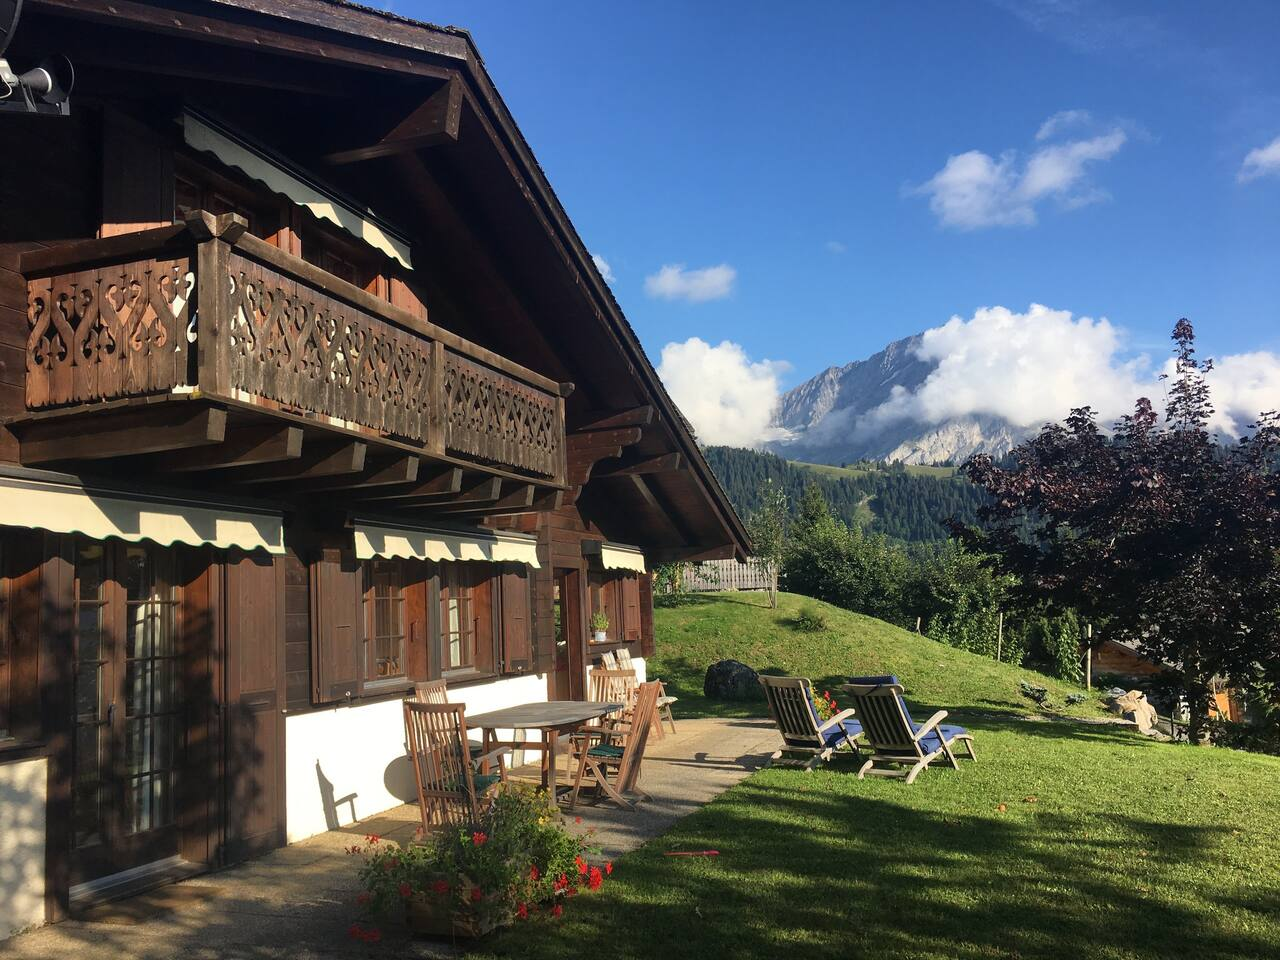 Chalet in the Summer